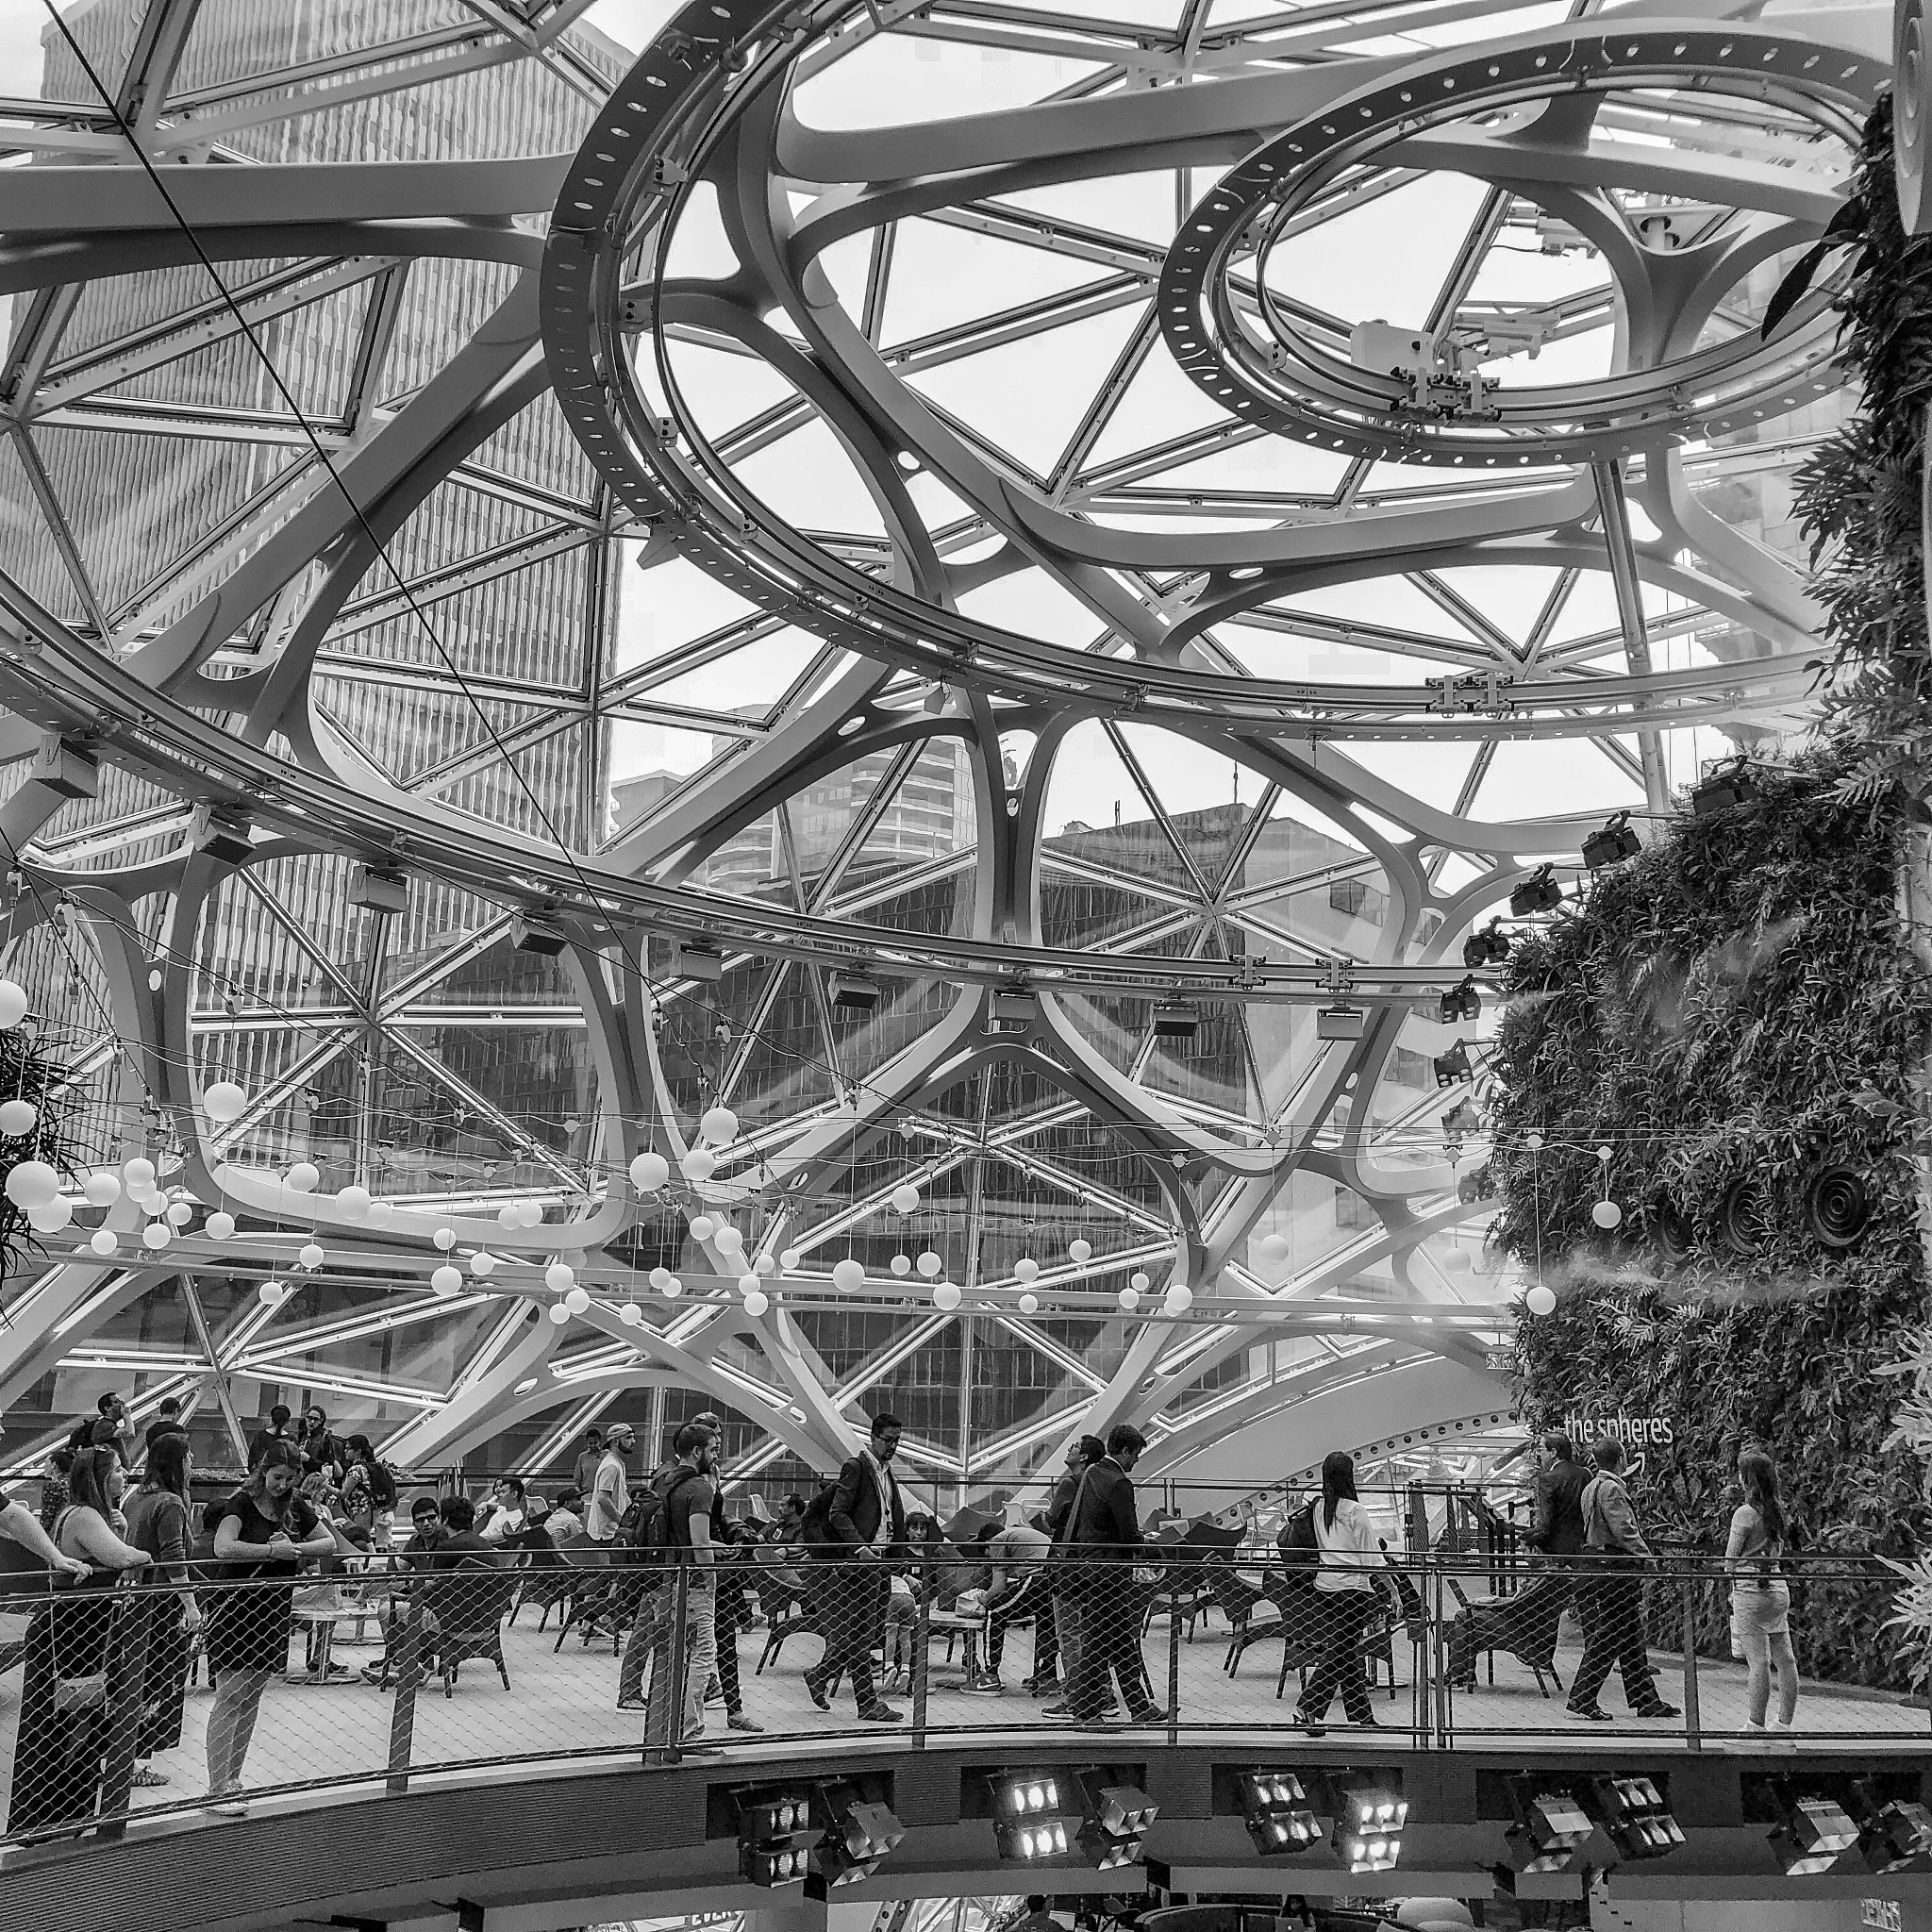 The Spheres, a place where employees can think and work differently surrounded by plants.  by Miguel Ramos